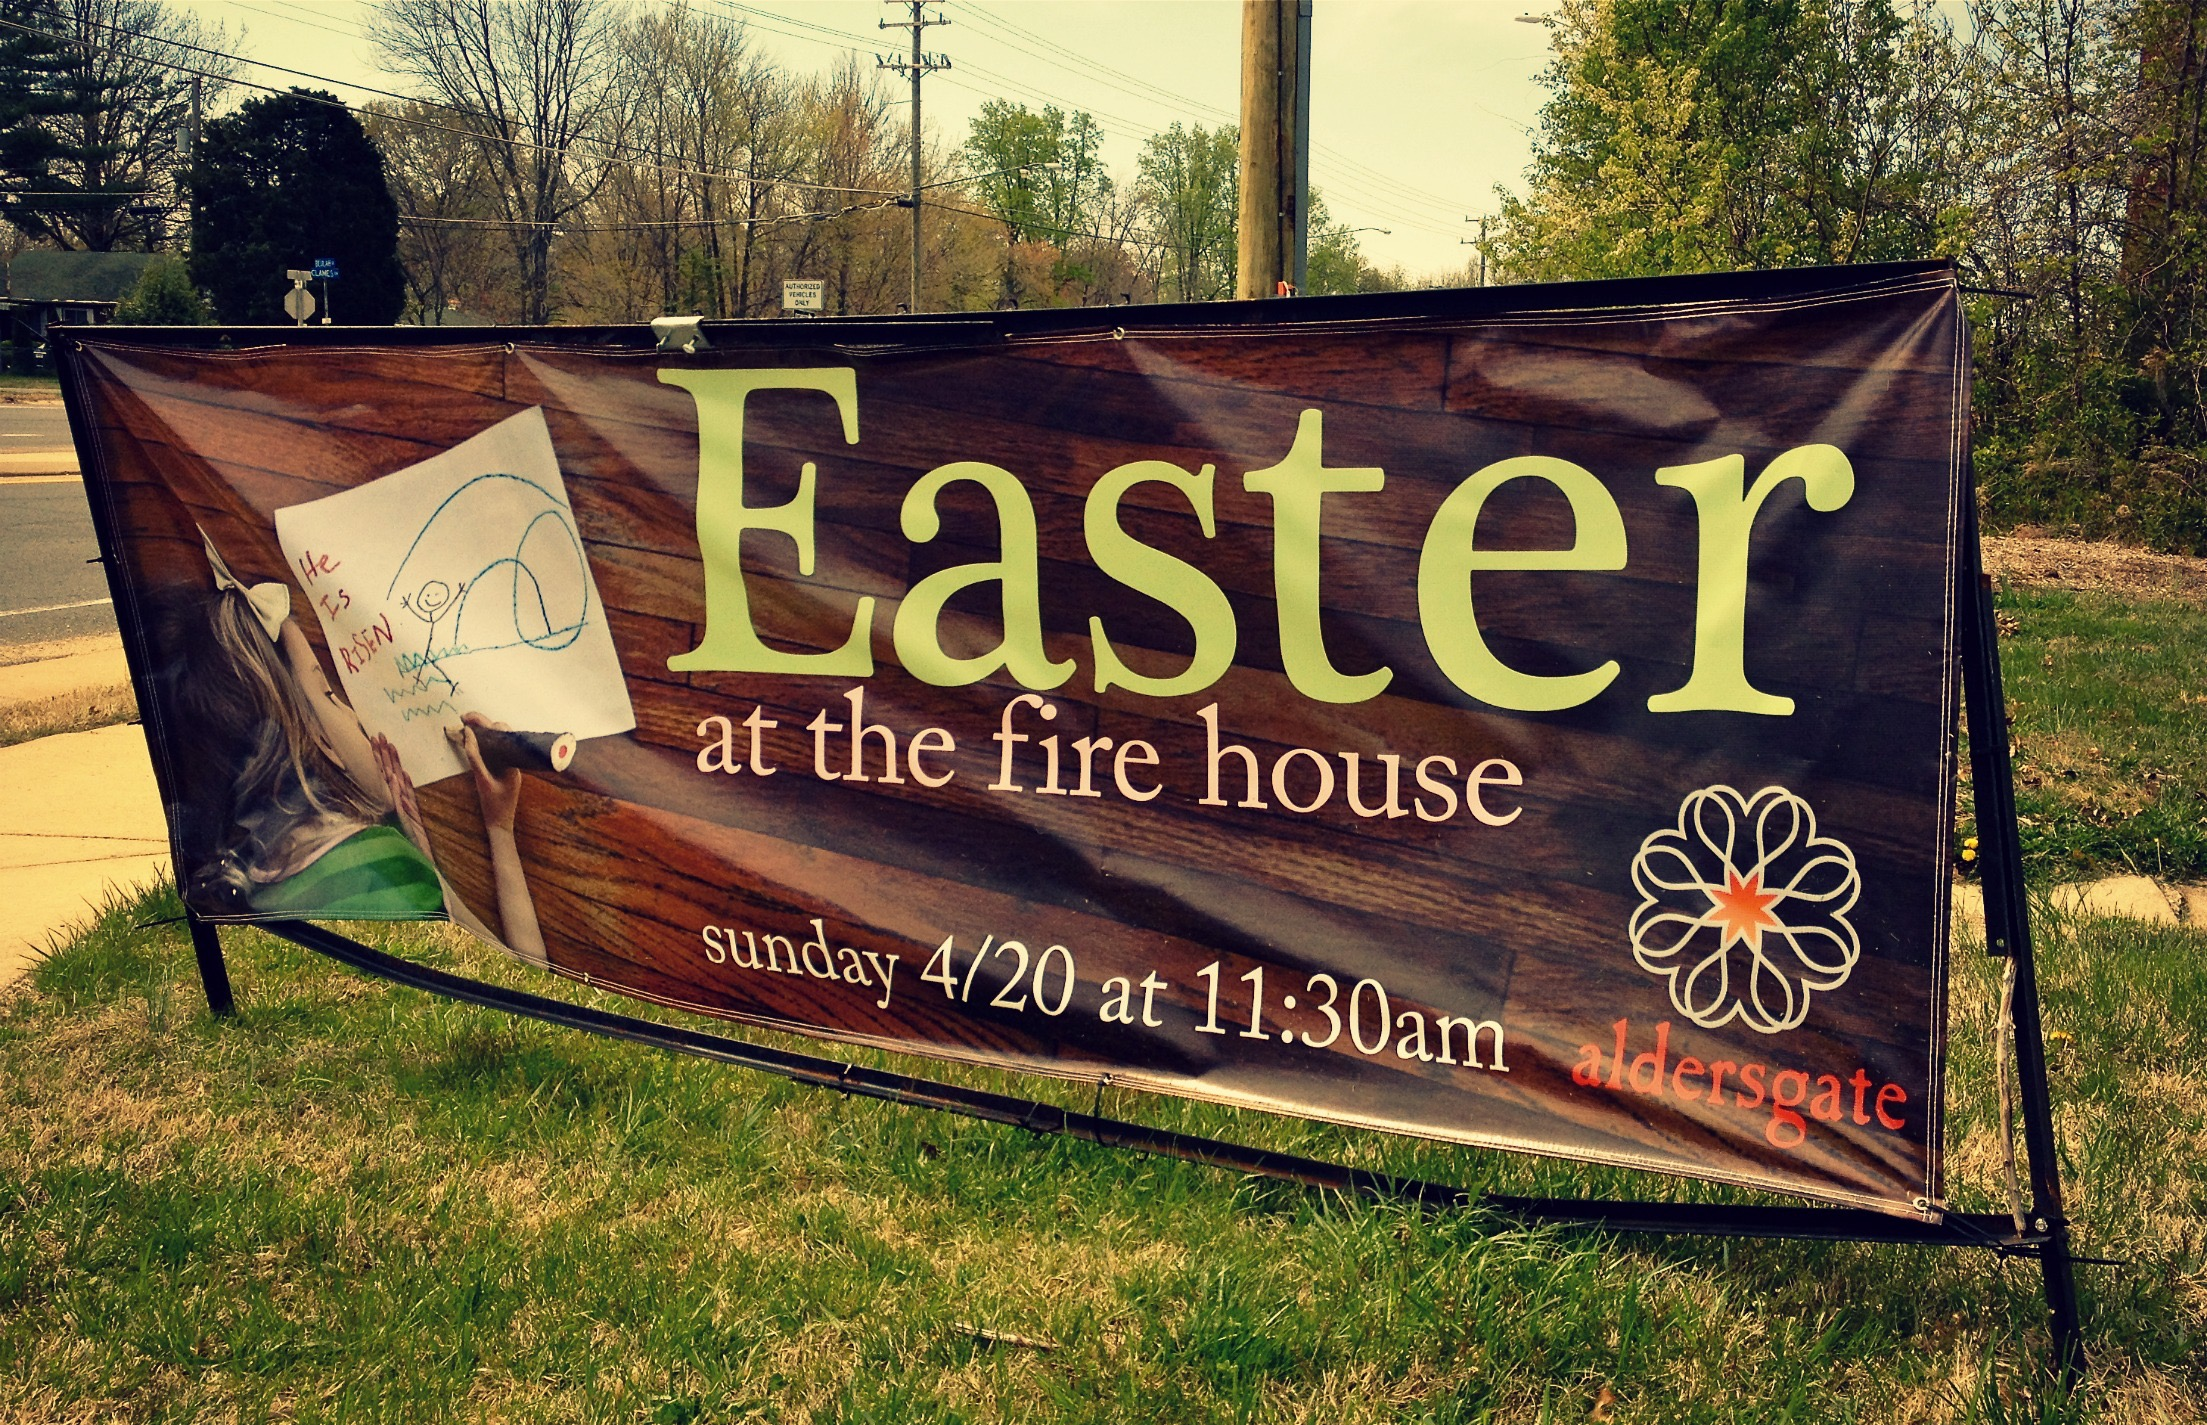 easteratthefirehouse.jpg